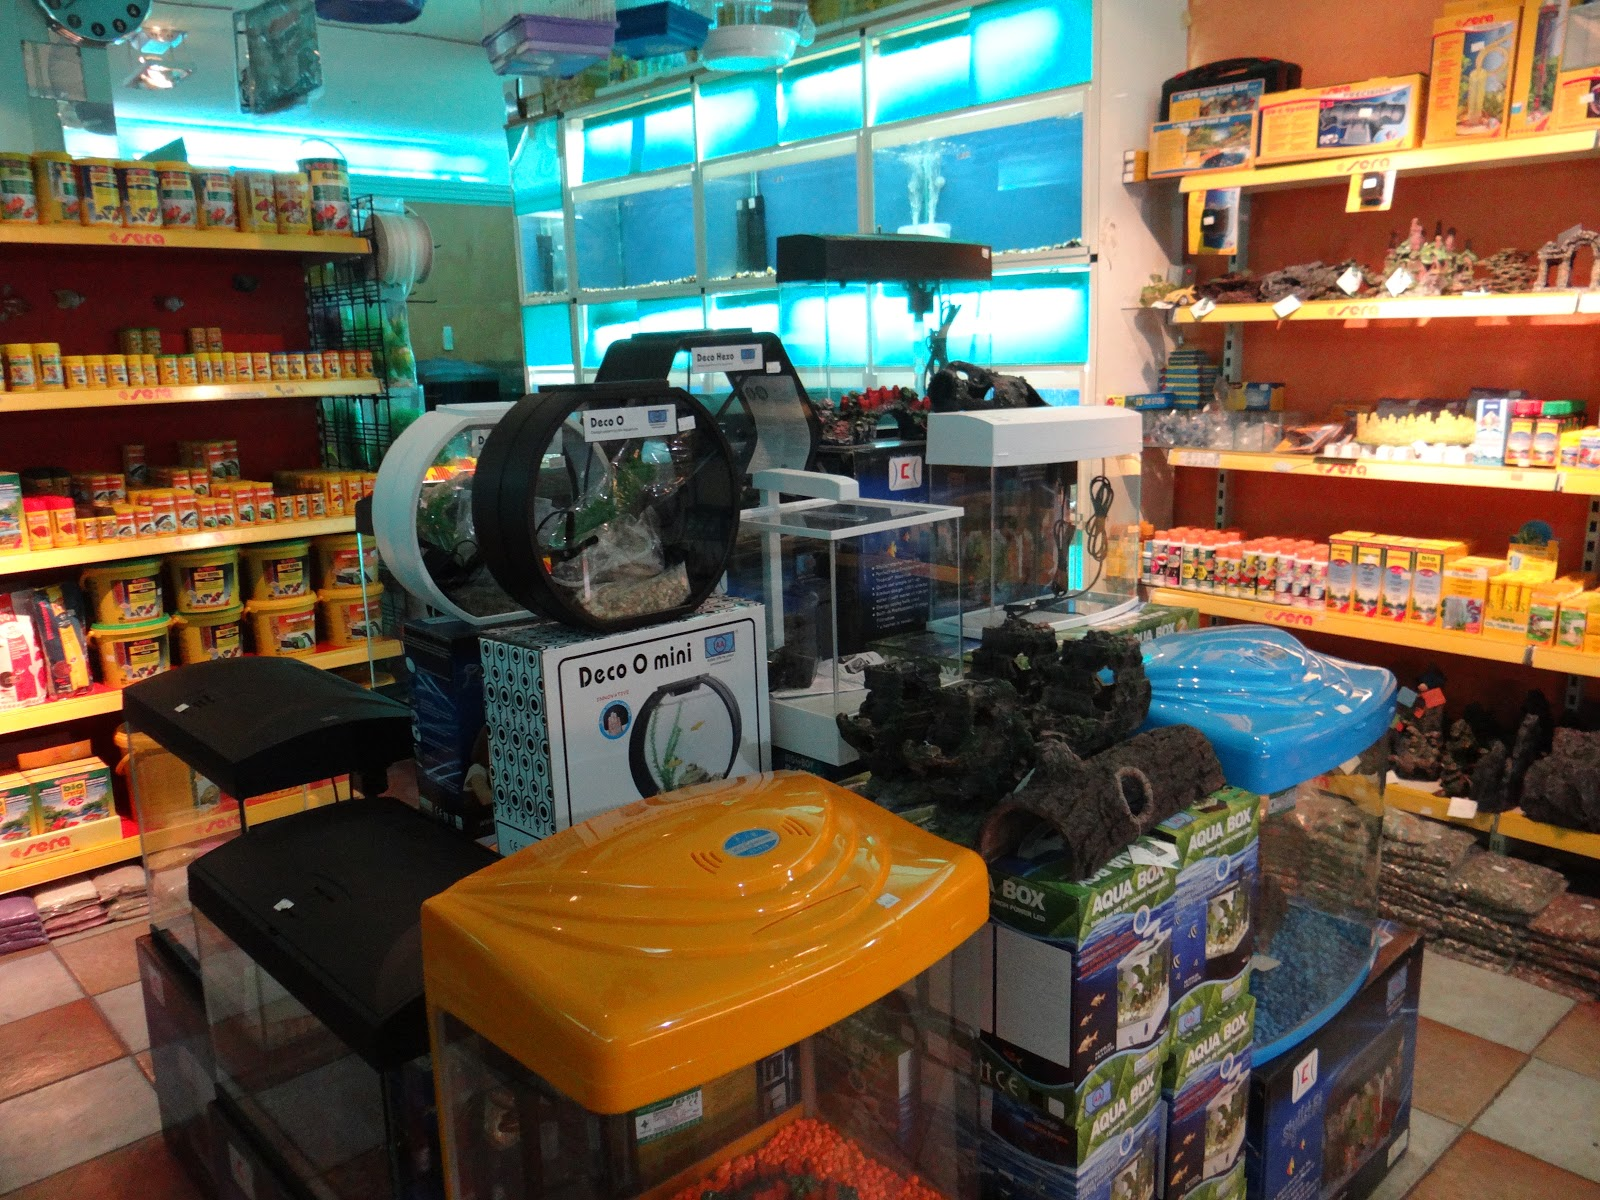 Fish aquarium for sale in qatar - Selection Of Some Tanks Food And Fish